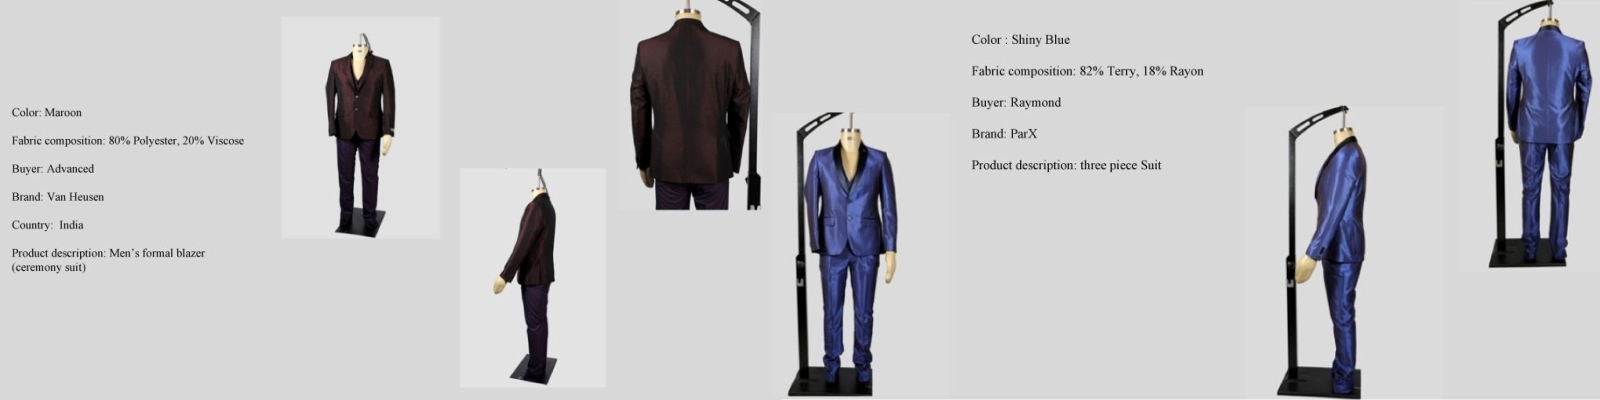 LGFG men's luxury 2-piece and 3-piece suits for wholesale distribution